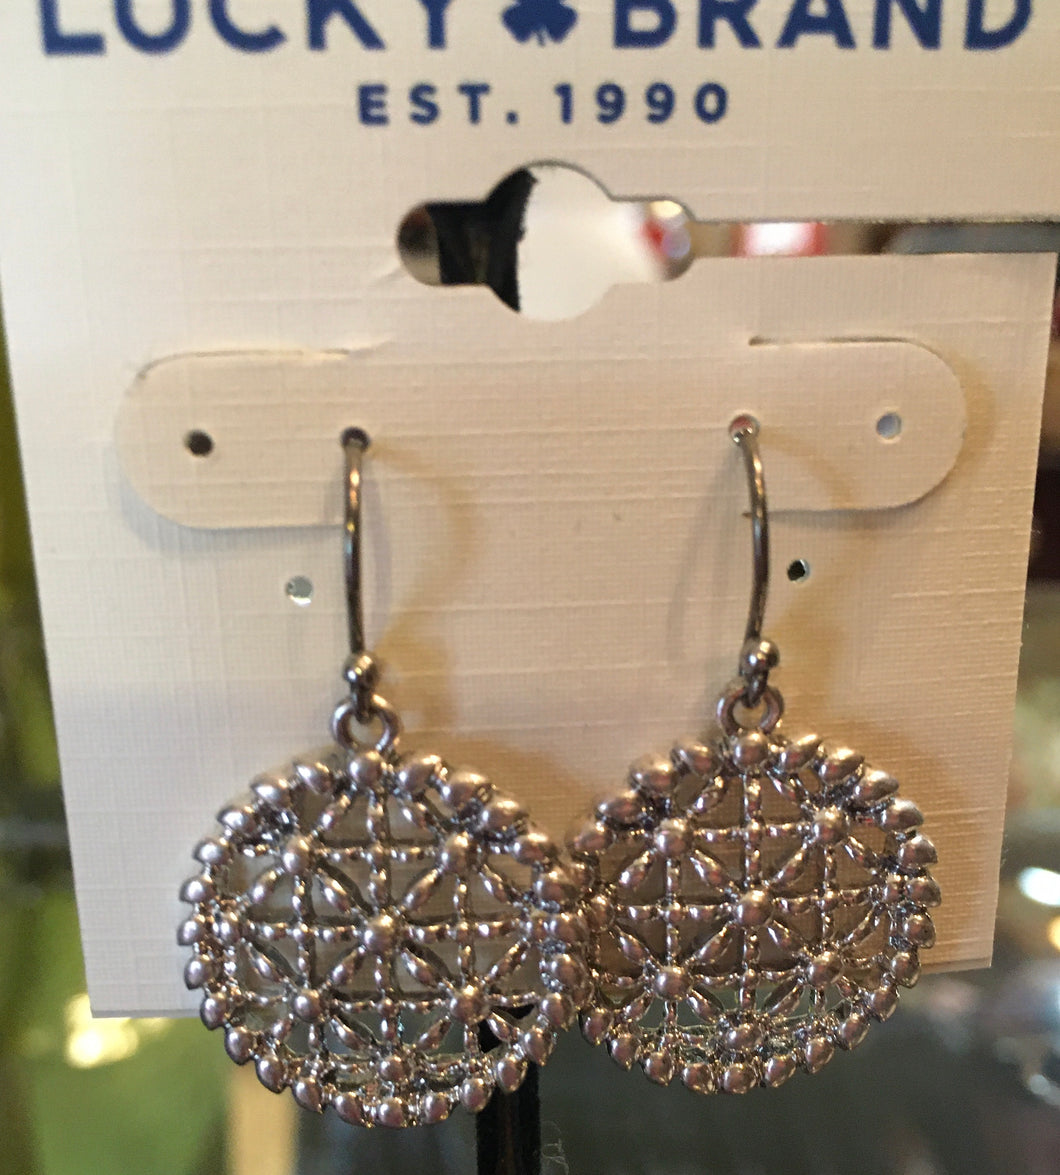 Jewelry-Lucky Brand-Silver pattern